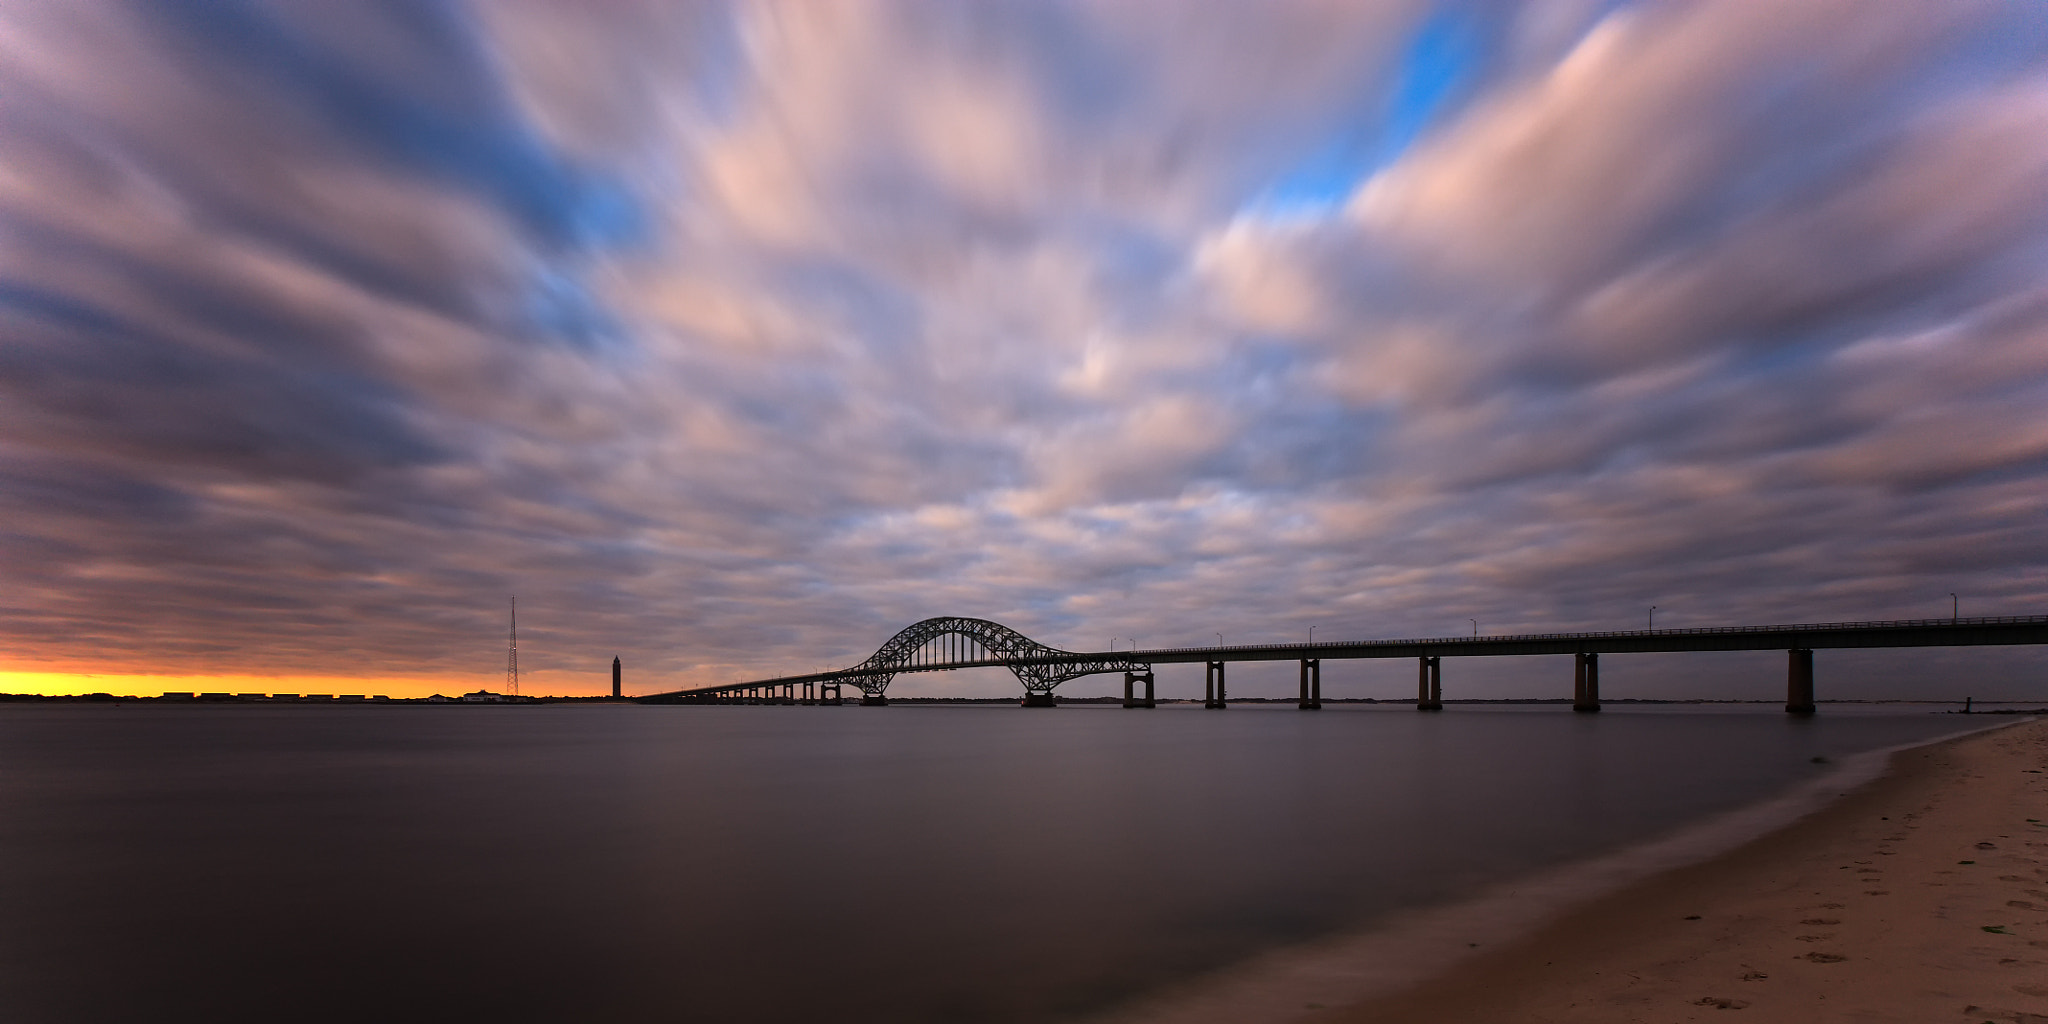 Photograph Robert Moses Causeway Bridge by Bill McBride on 500px